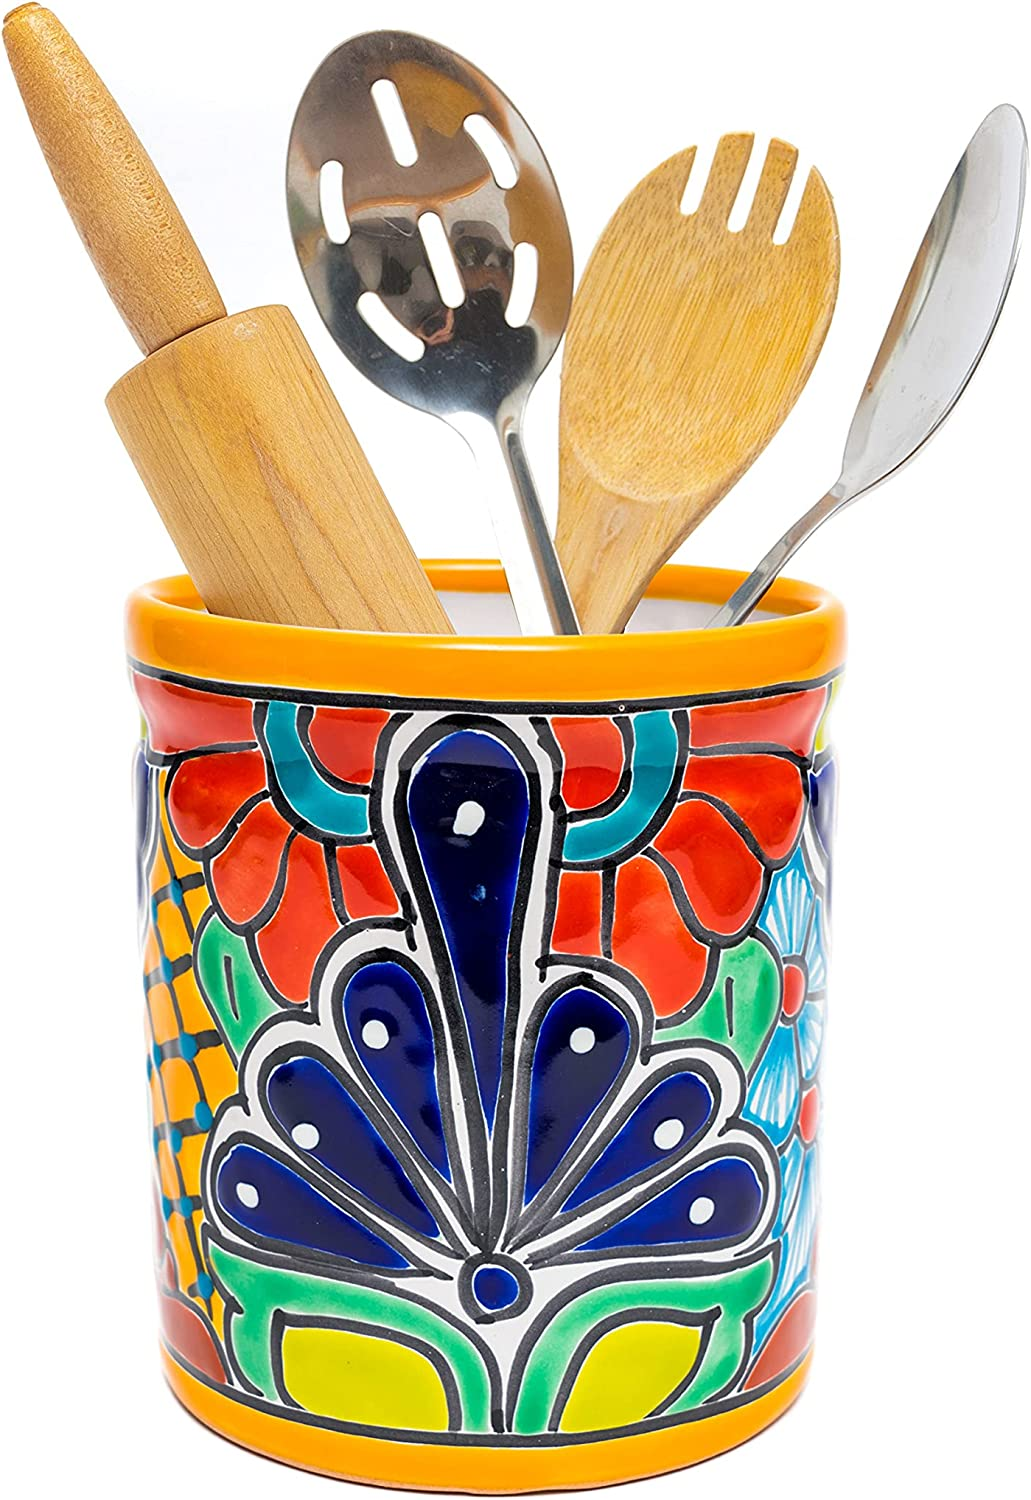 Vintage Handmade Hand Painted Mexican VaseUtensil HolderContainer with a Bold Floral Design